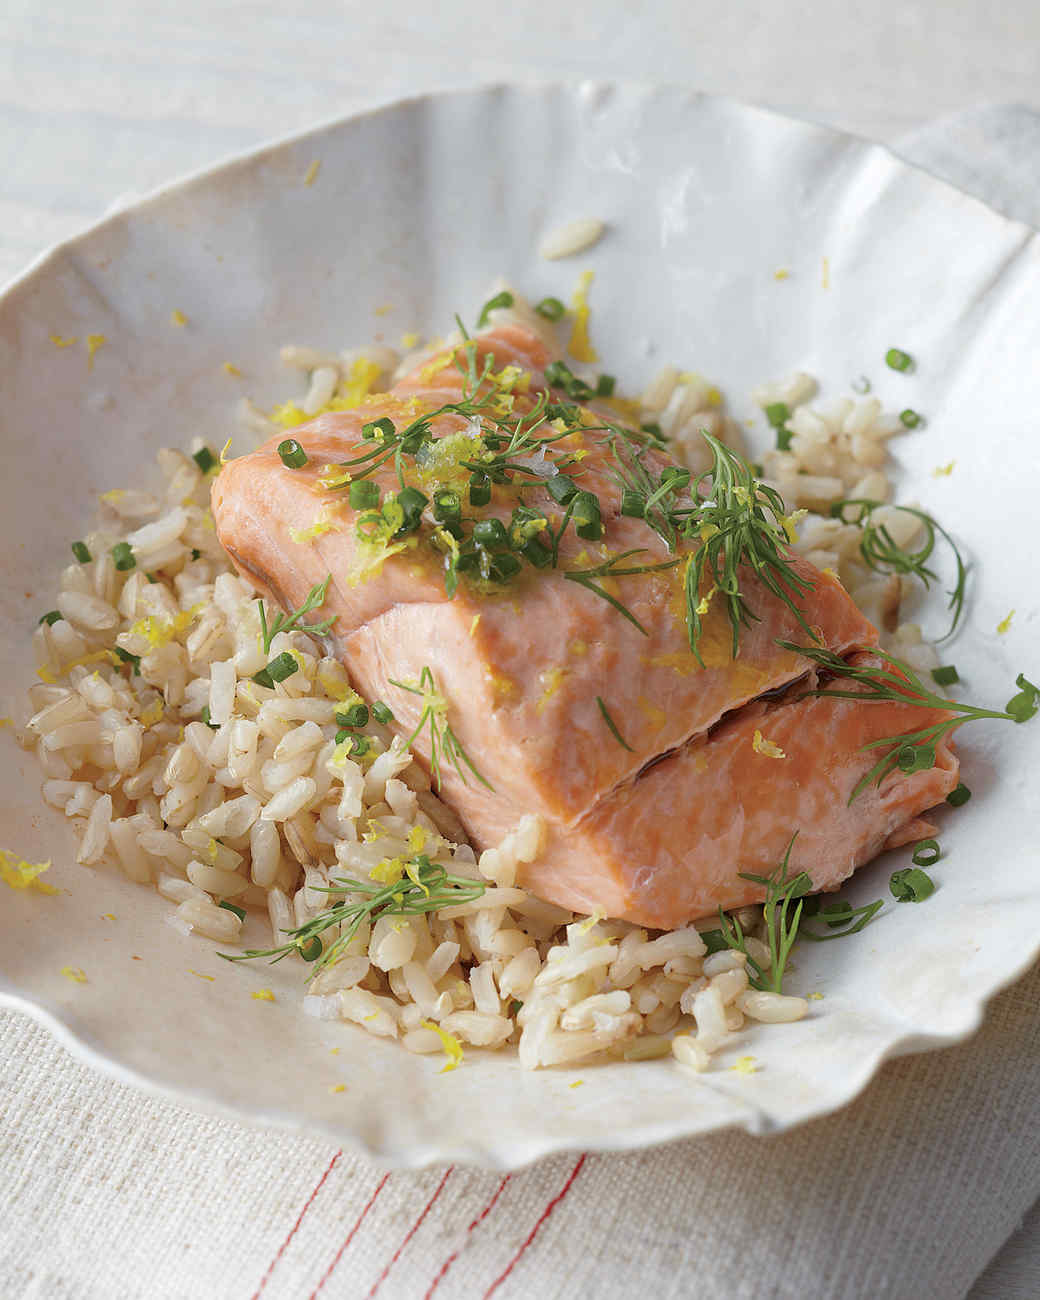 Steamed Salmon with Herbs and Lemon